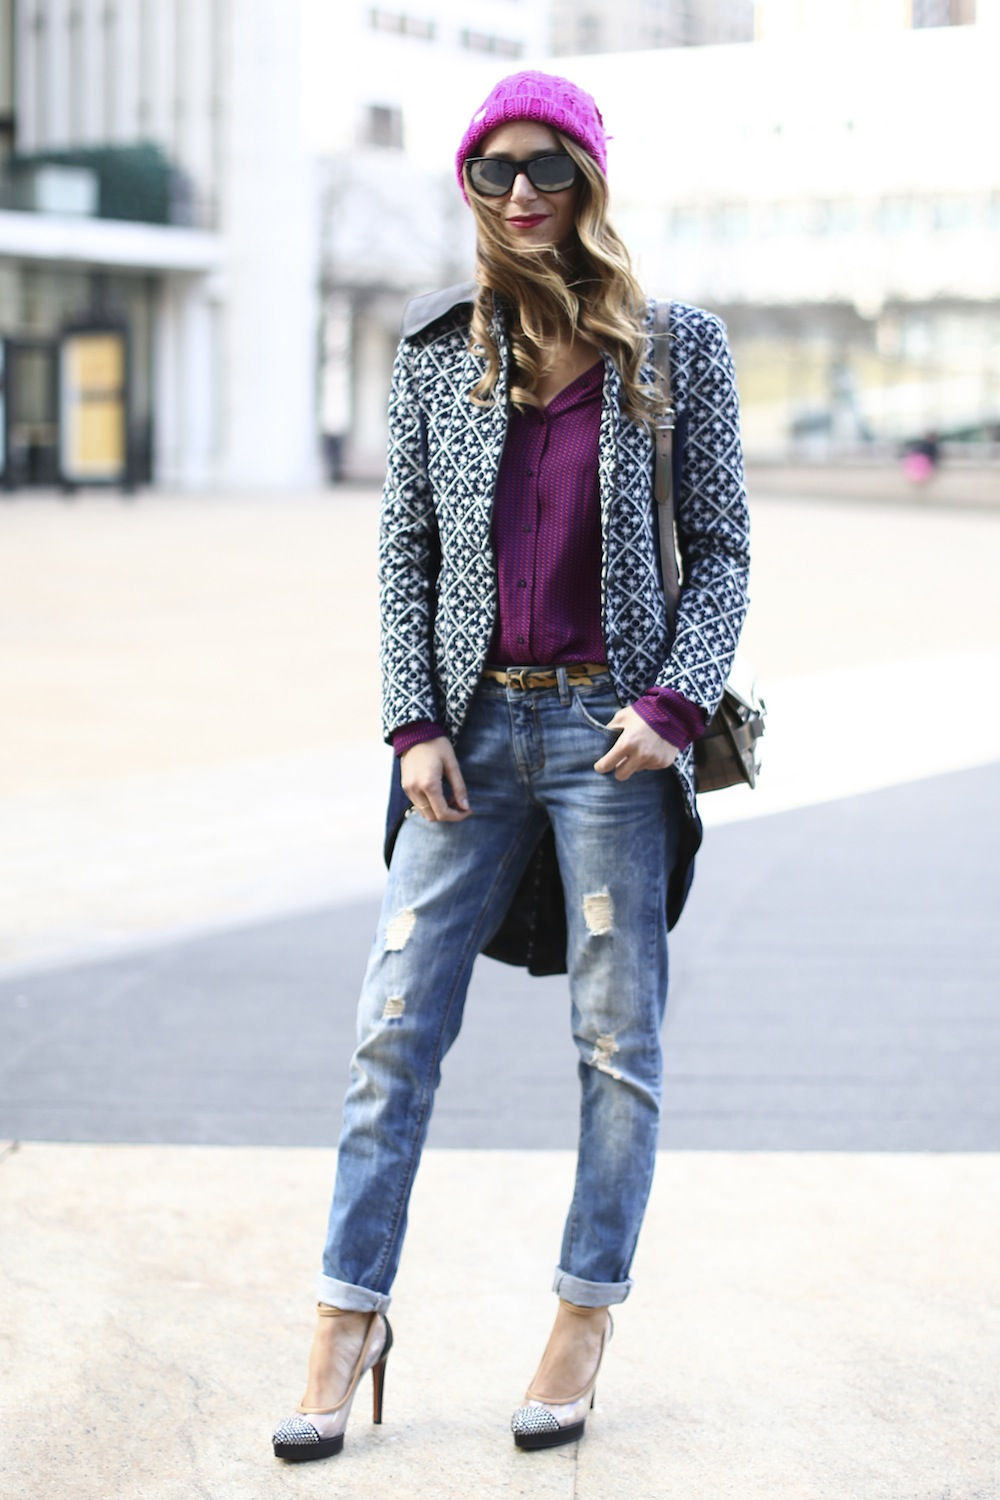 New fashion jeans for girl 90